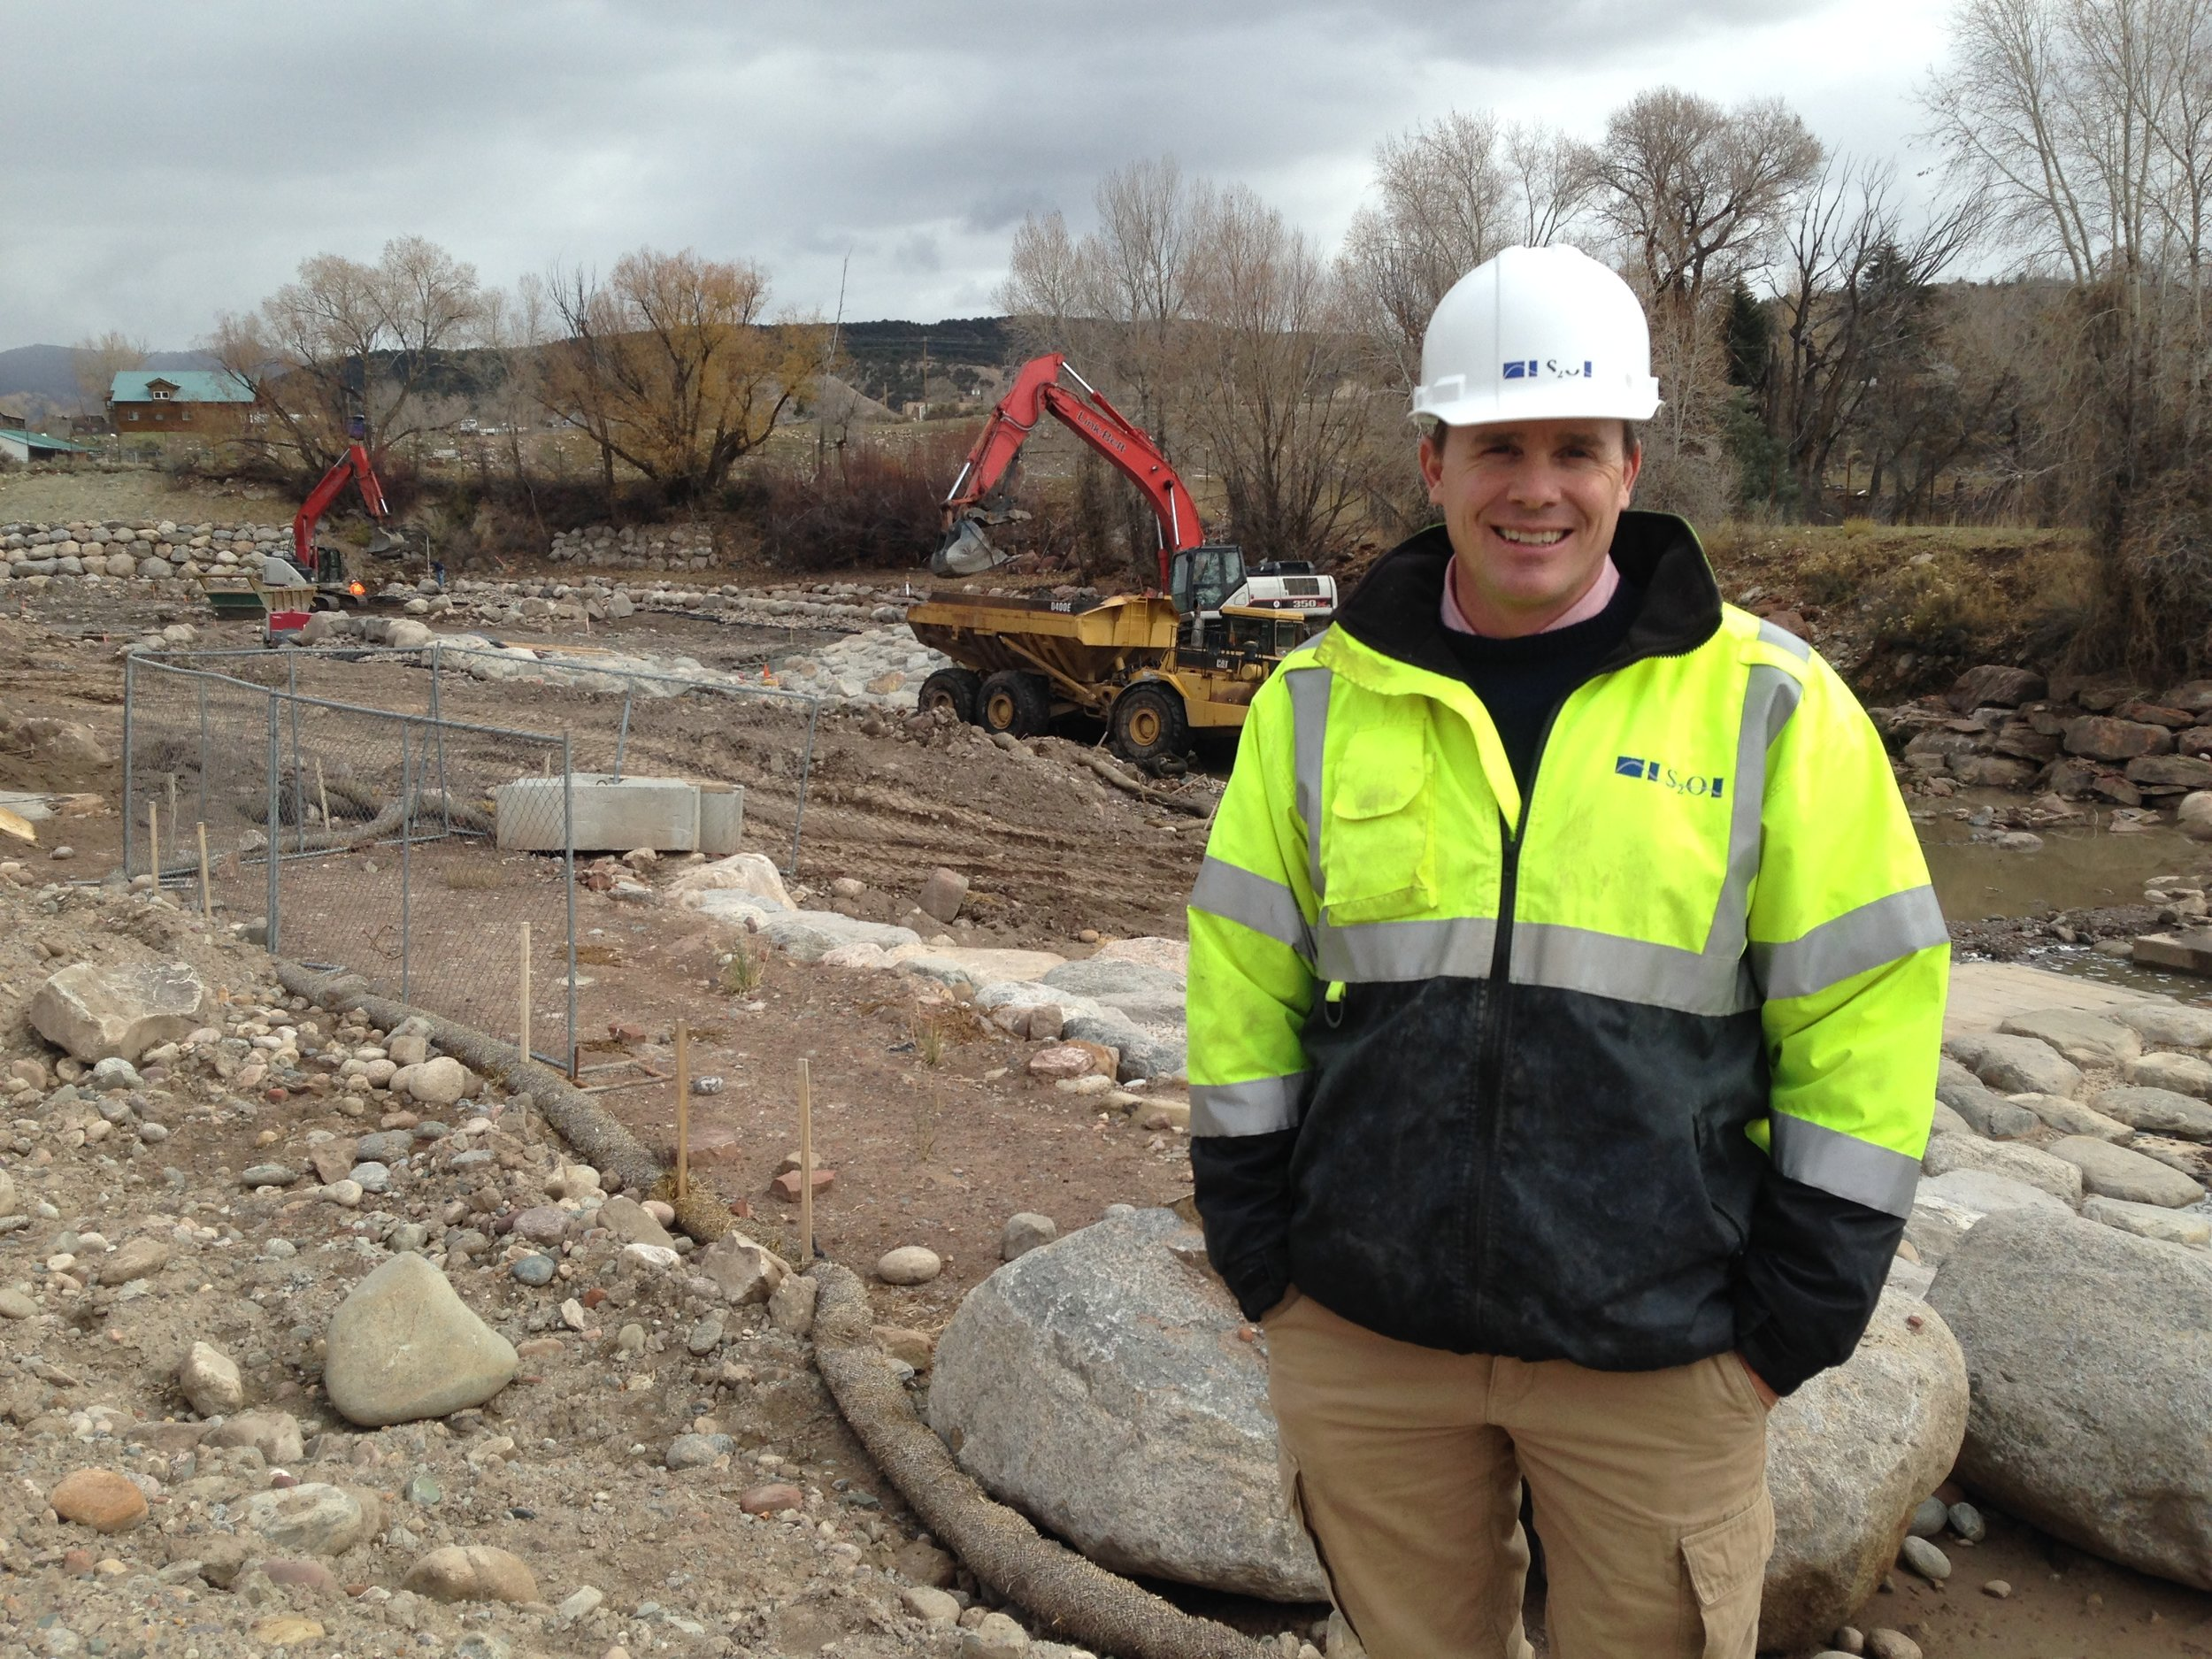 """Scott Shipley of S20 during construction of the Eagle River Whitewater Park. """"We can give them an experience they didn't have before. Just by doing a little bit of manipulation of that river, they can become the Breckenridge of kayaking."""" Eugene Buchanan"""